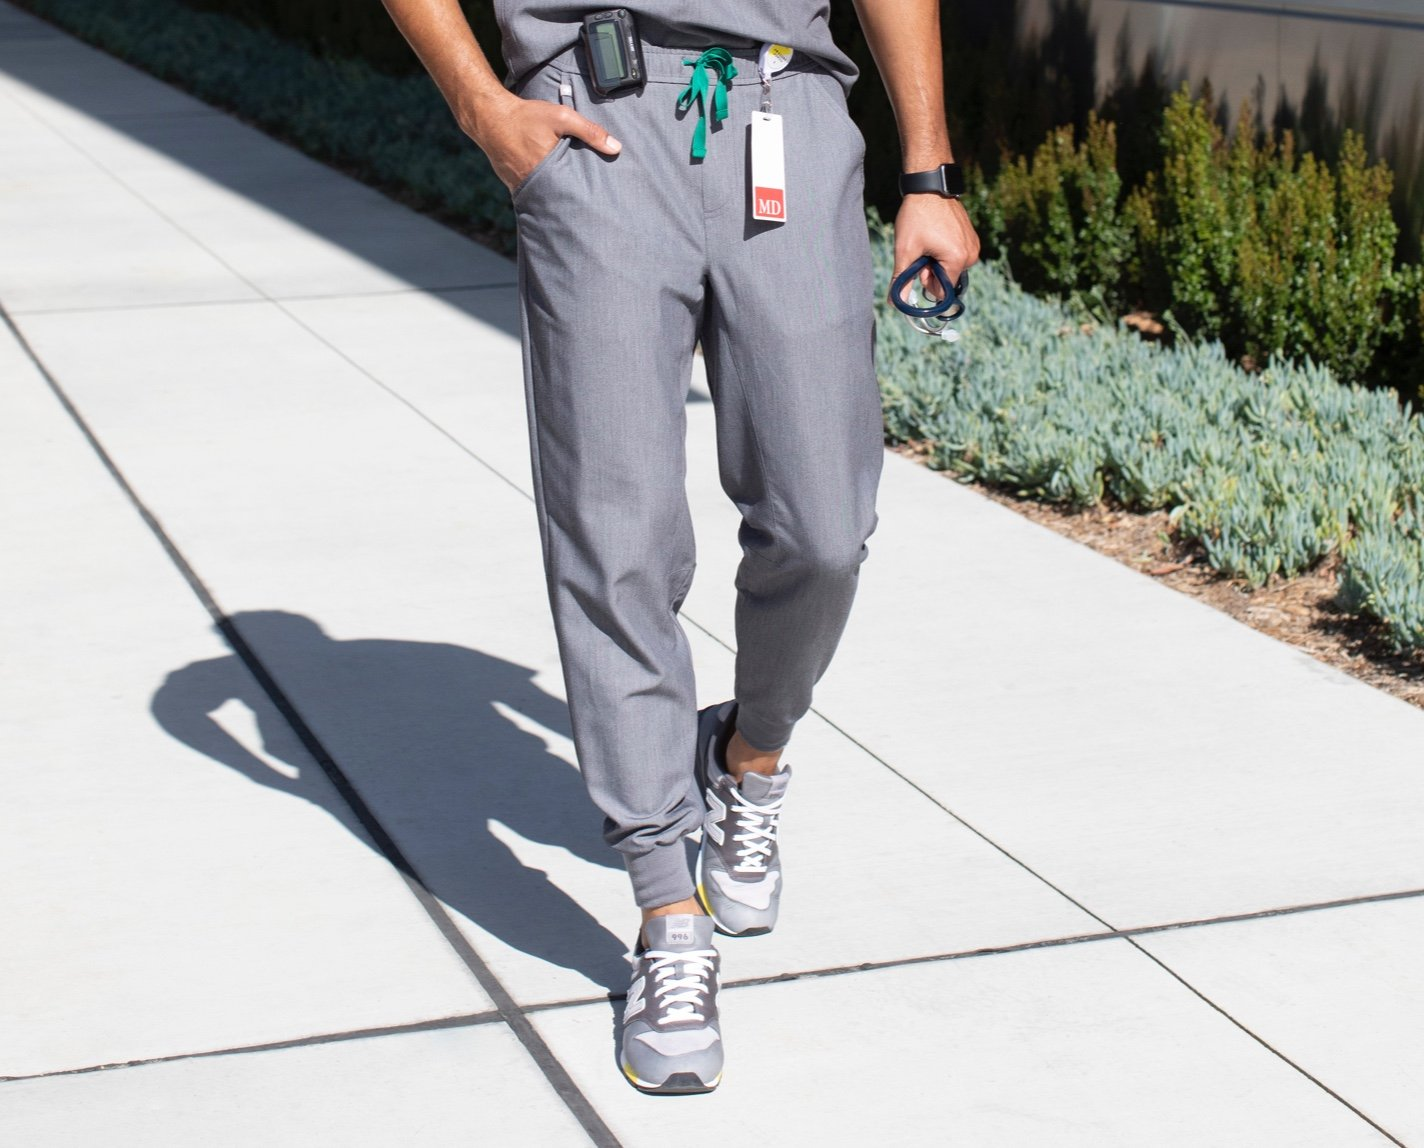 Seamlessly transition from work to workout to play in our Tansen Jogger Scrub Pants. Athletic in look and function, the Tansen has a slim fit, five pockets and sporty cuffs. Features our lightweight, breathable, 100% awesome proprietary FIONx fabric.